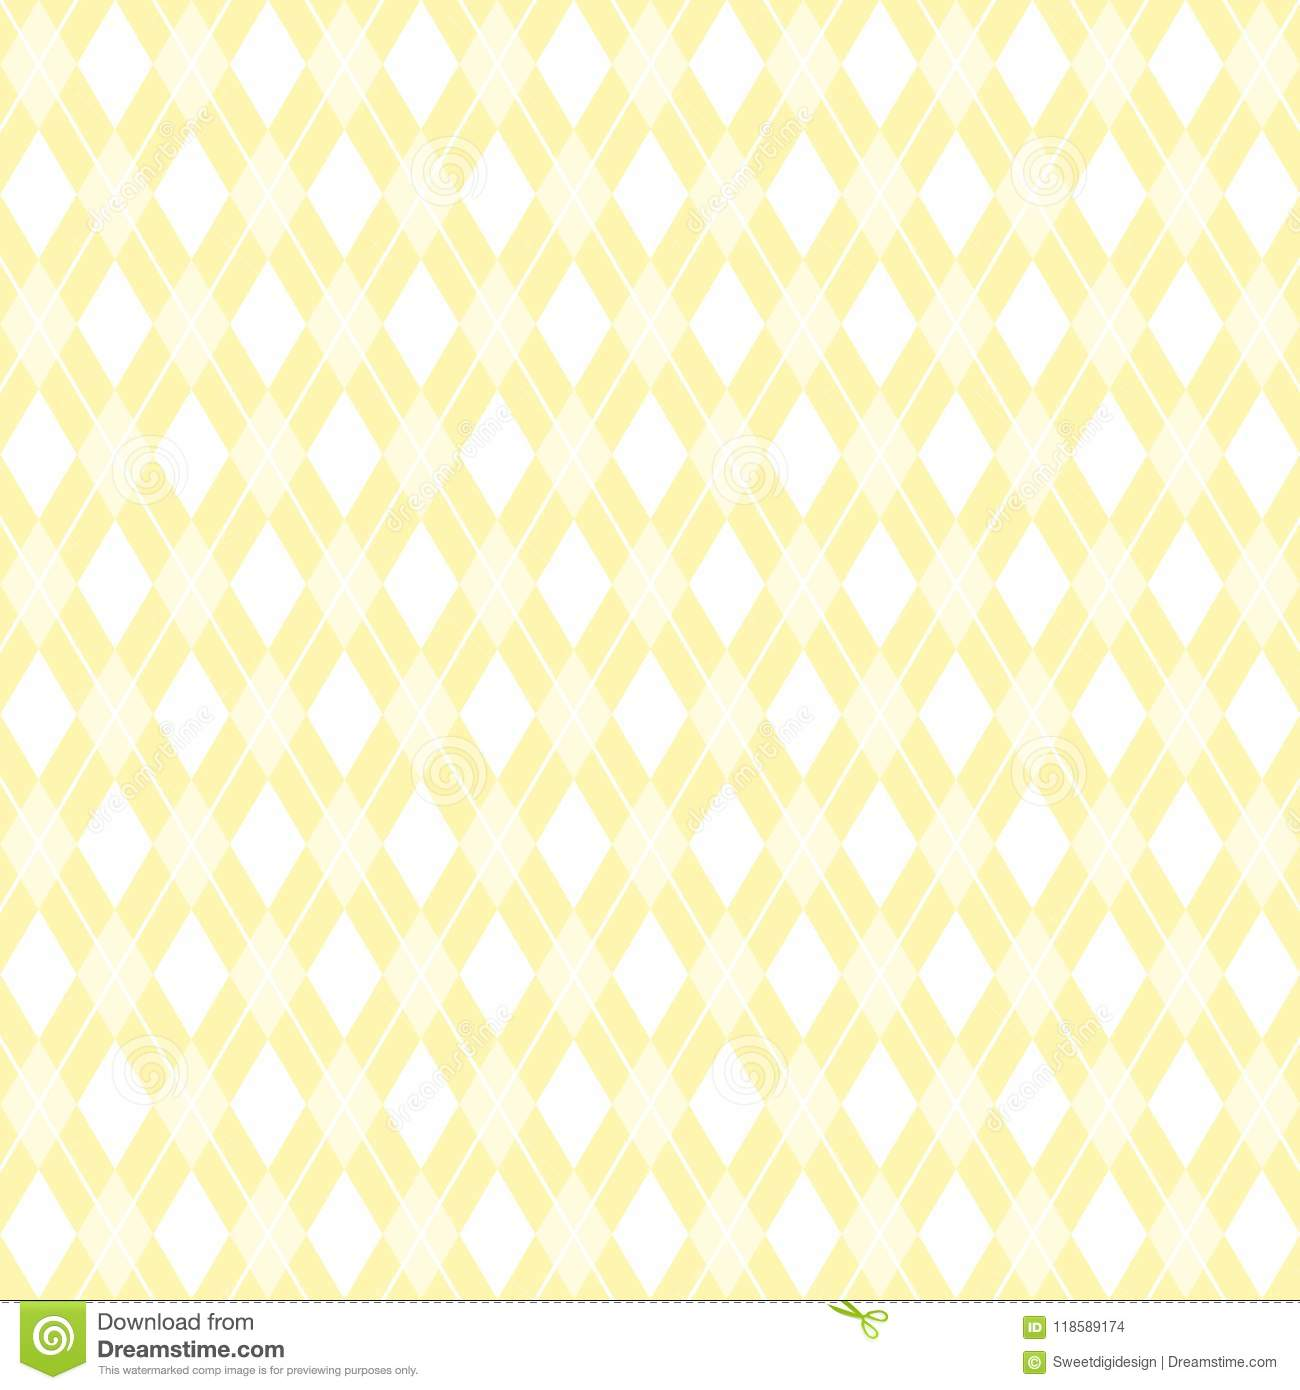 Argyle Pattern Yellow Background Argyle Scrapbook Paper Stock